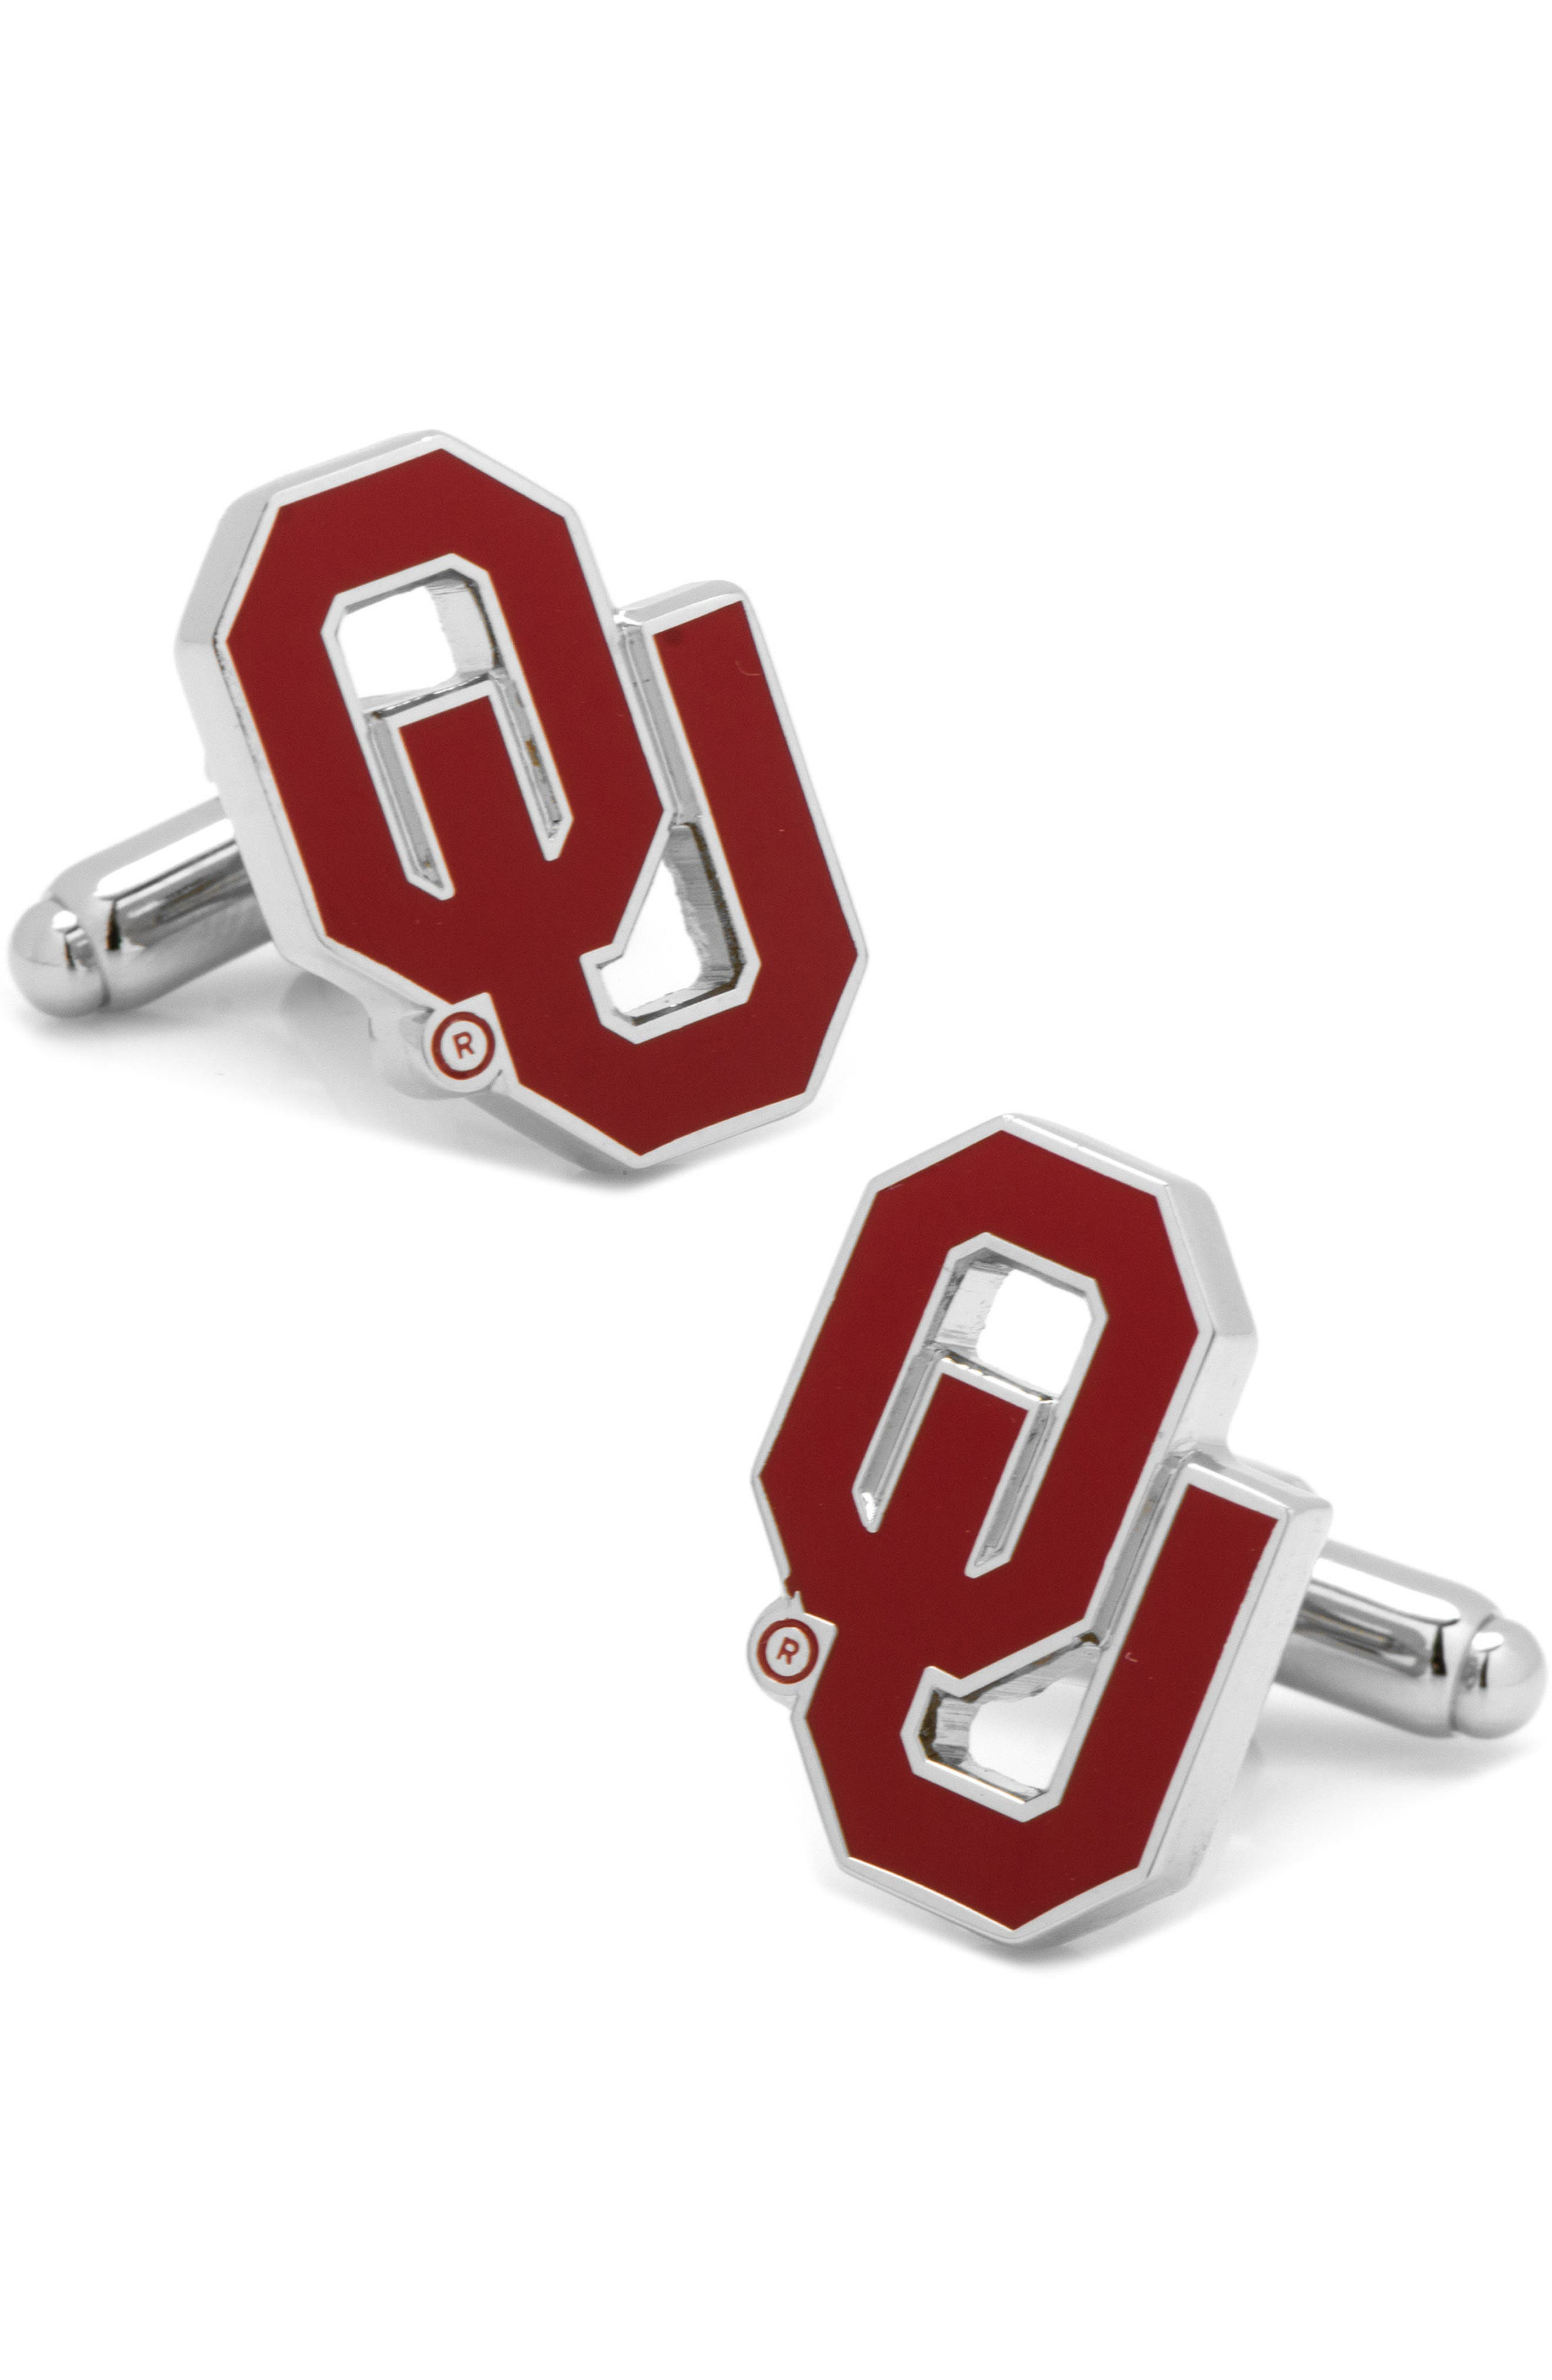 'Oklahoma Sooners' Cuff Links,                             Main thumbnail 1, color,                             RED/ SILVER